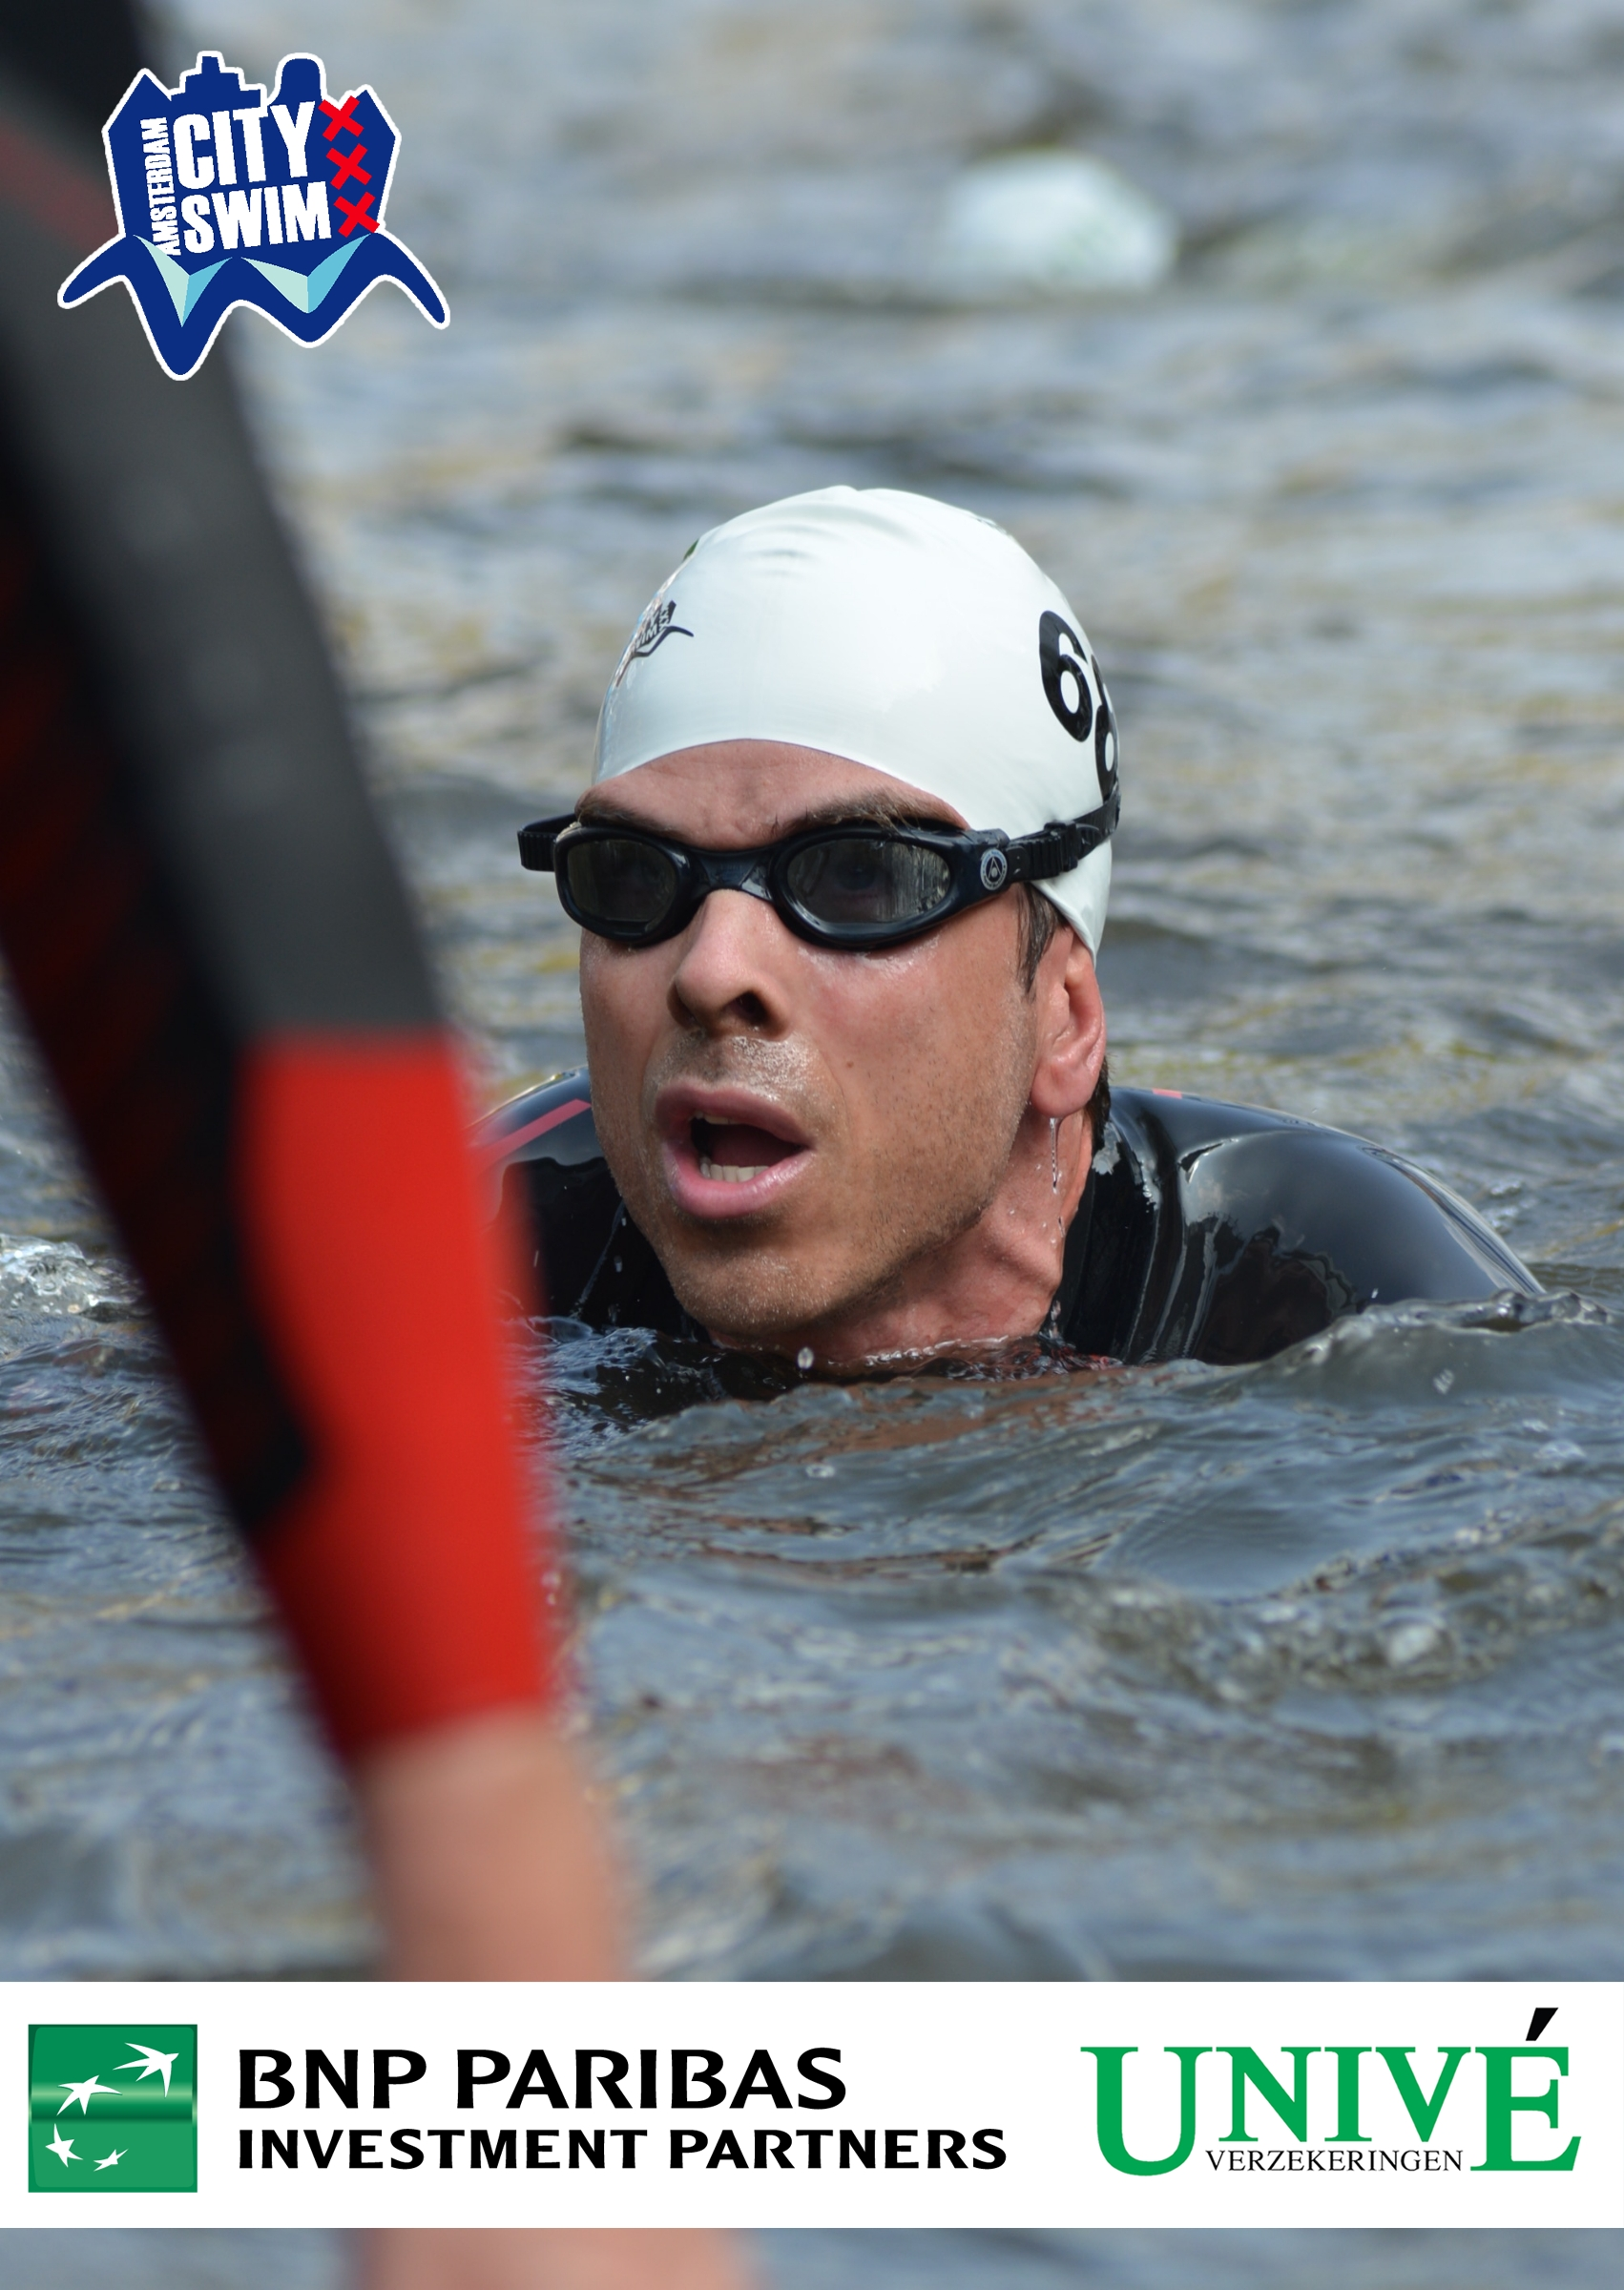 Finished 2.014 meters in 32:50 minutes. In a field of 2.018 swimmers I finished in 46th place